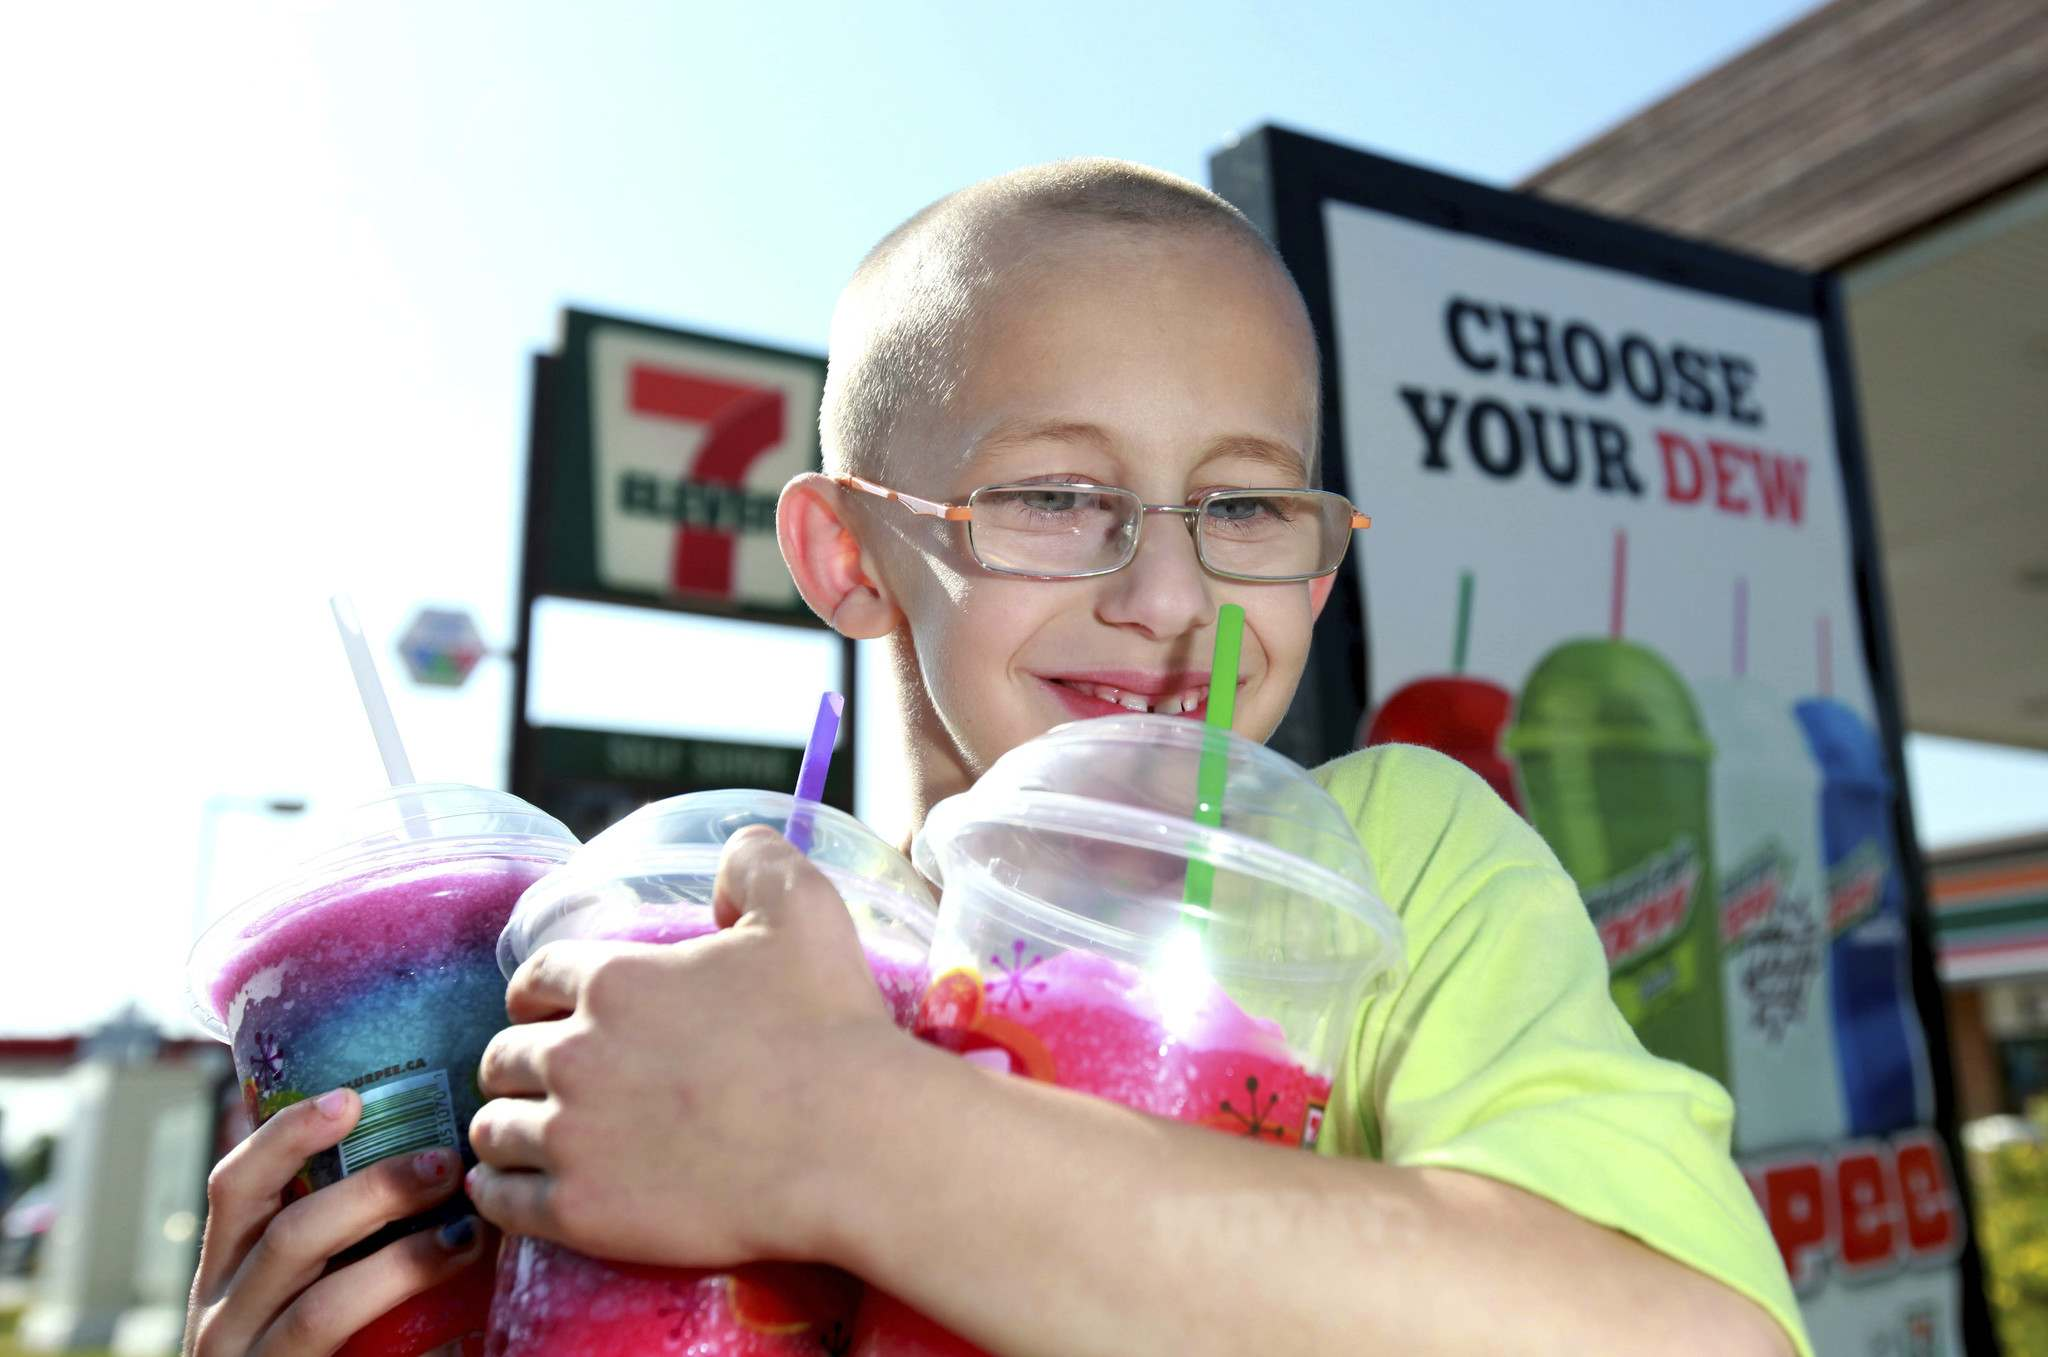 Winnipeggers, such as Aidan Pratt, have helped the city earn the title of Slurpee Capital of the World. Now the city is naming a street after the iconic sugary drink. (Ruth Bonneville/Winnipeg Free Press Files)</p>